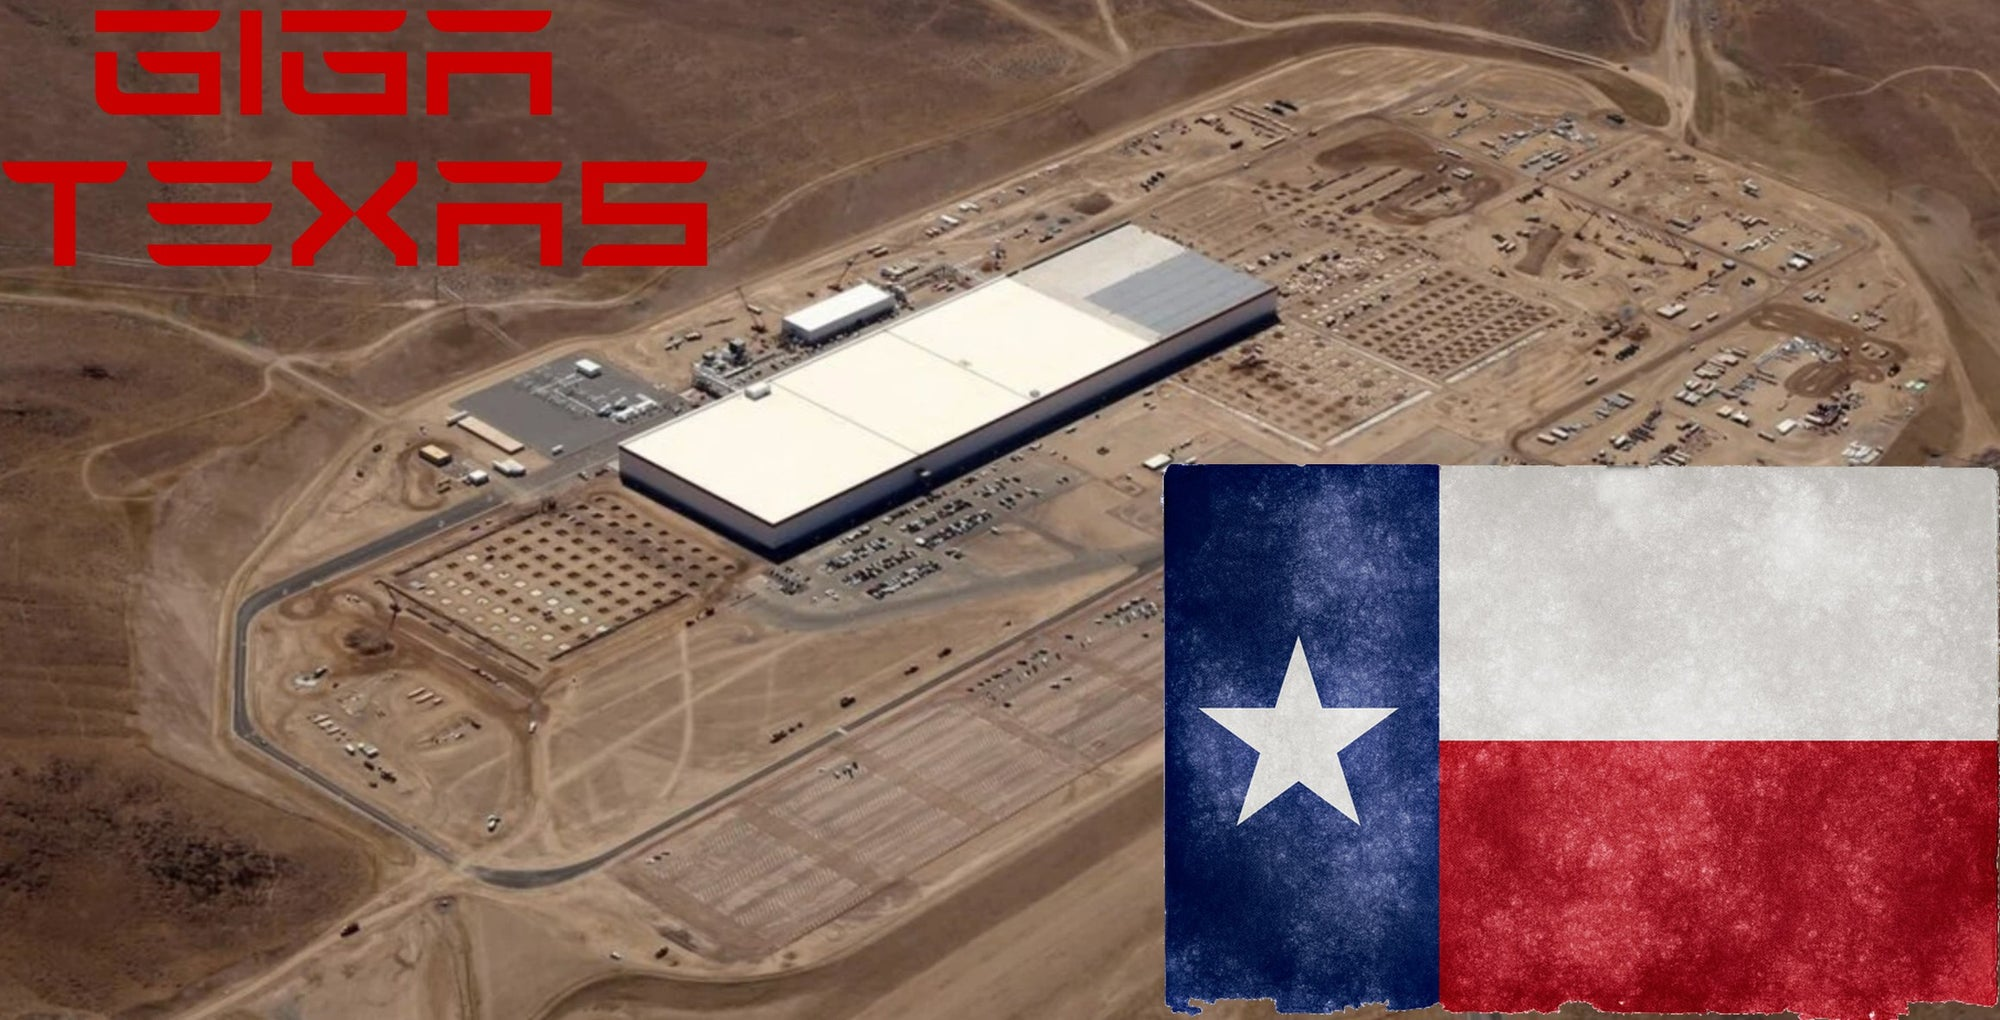 Tesla-Model-Y-Cybertruck-Gigafactory-Texas